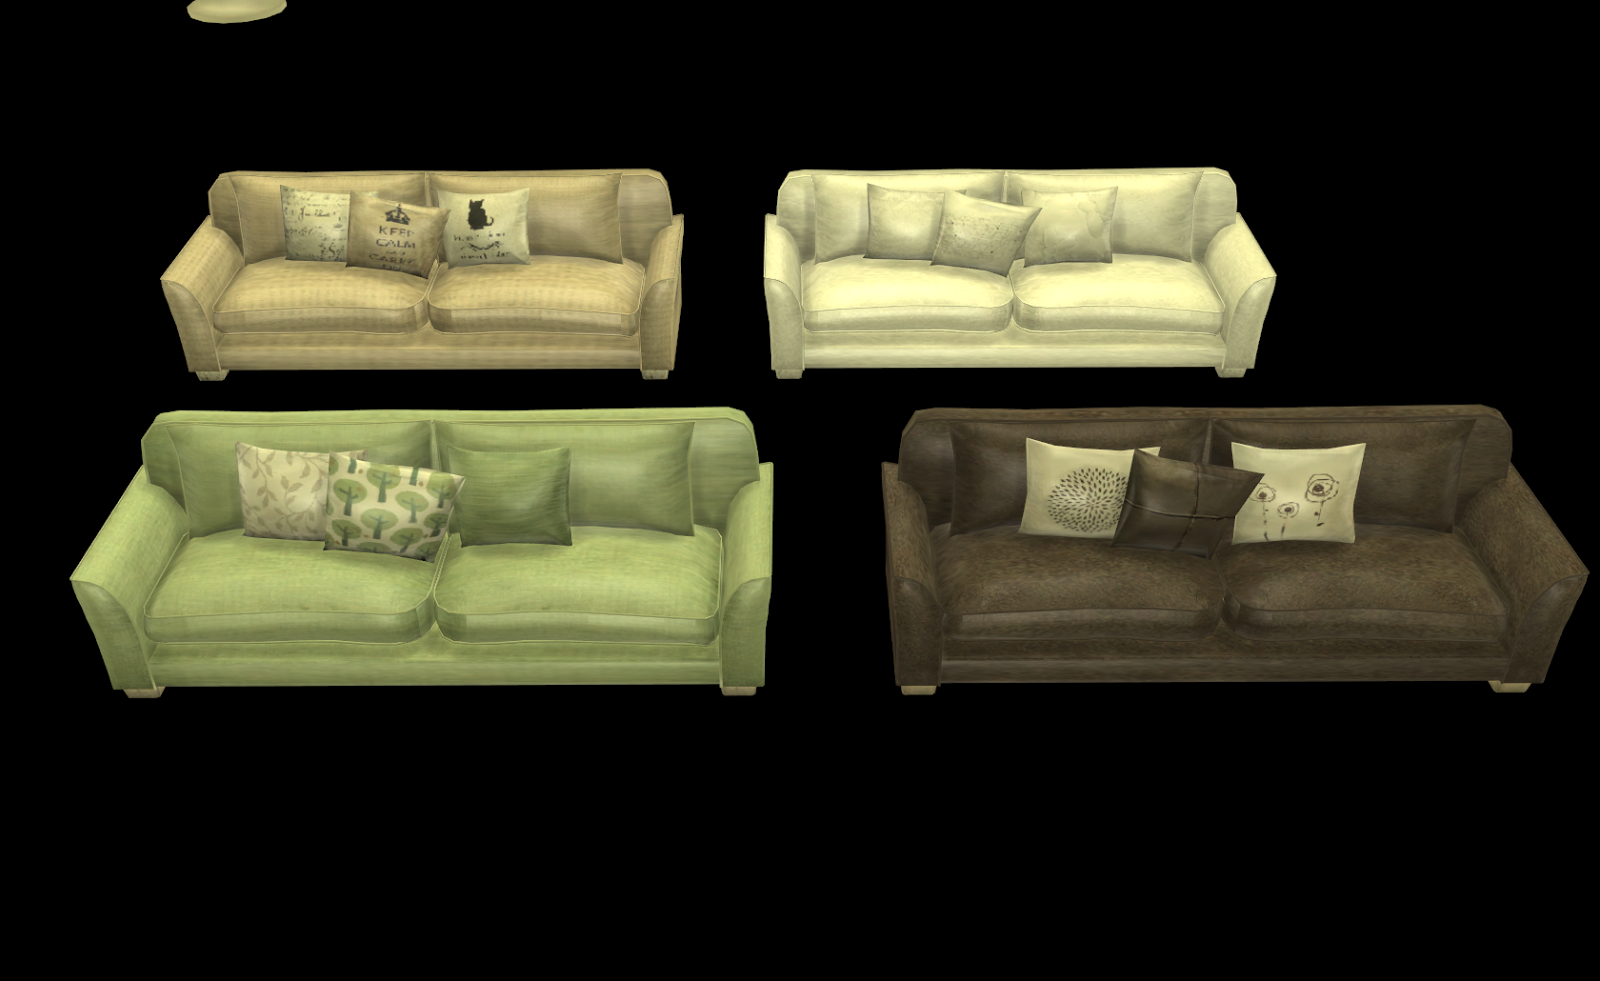 My Little The Sims 3 World Furniture Recolors Set 5